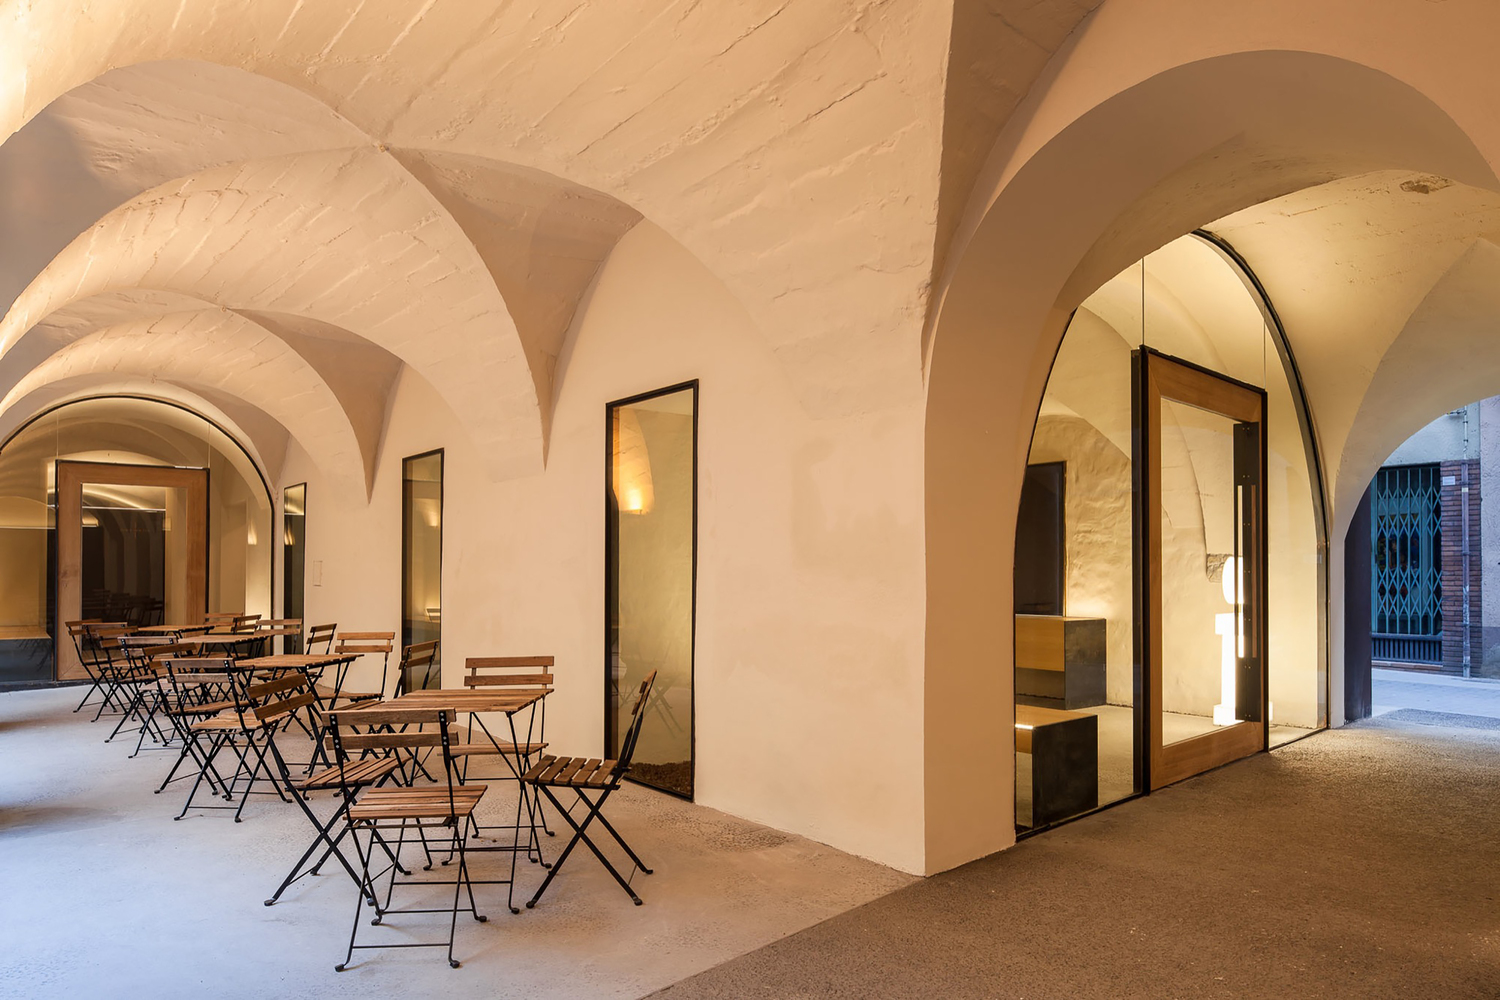 A Barrel Vault Hallway Turned Into Tourist Office